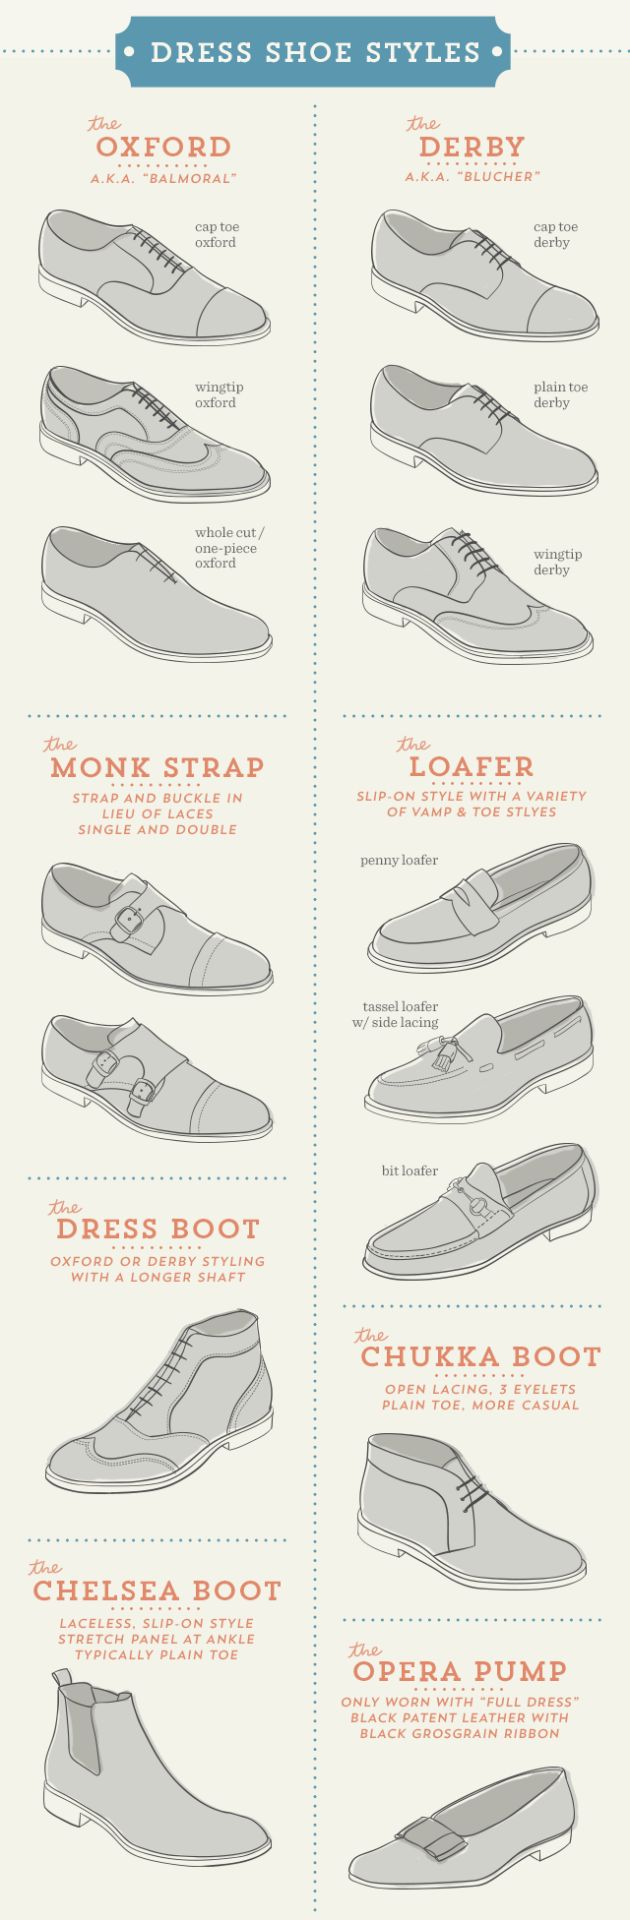 A visual glossary of dresss shoes for menVia                                                                                                                                                      More http://www.99wtf.net/men/mens-hairstyles/trendy-fantastic-hair-products-men/